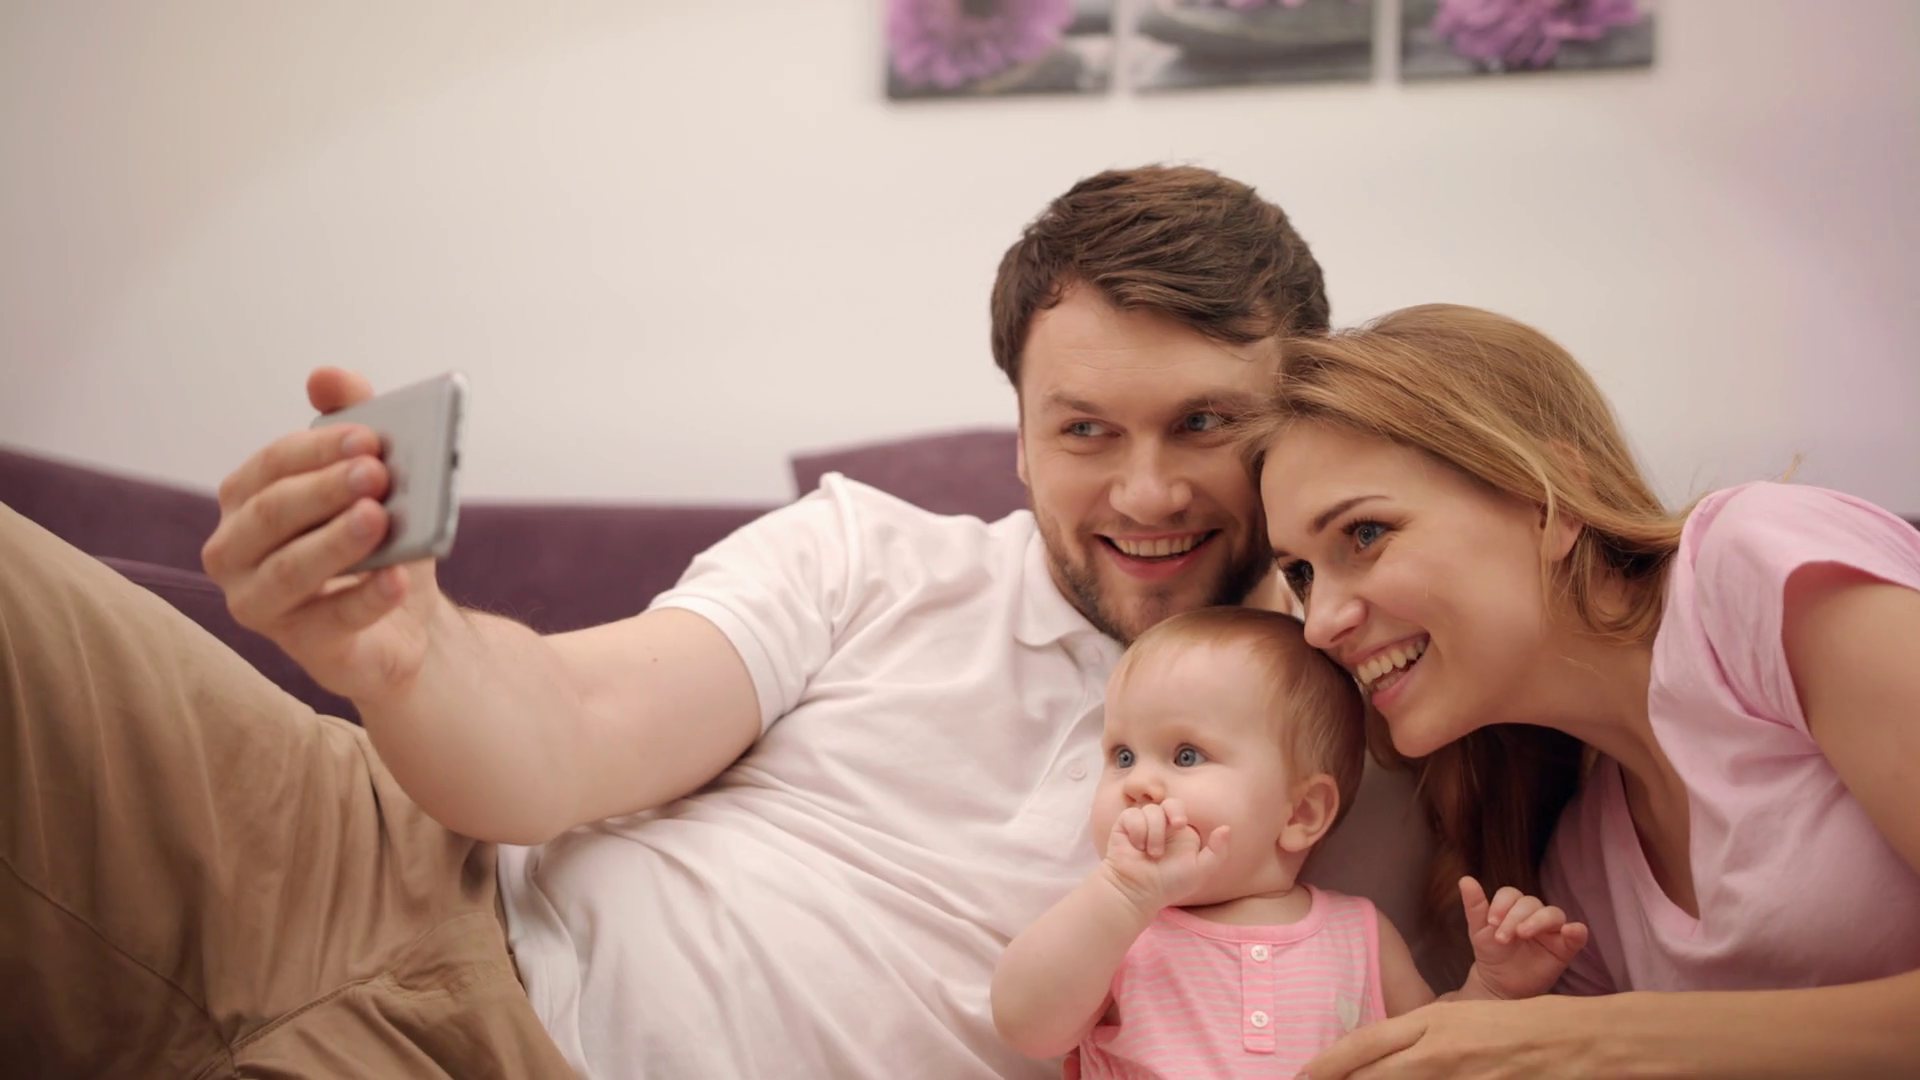 Family Selfie Photo At Home Happy Husband And Wife Taking Picture With Little Baby Man Taking Photo With Happy Family Sweet Parenting Togetherness Love Parent Take Selfie Picture With Daughter Stock Video